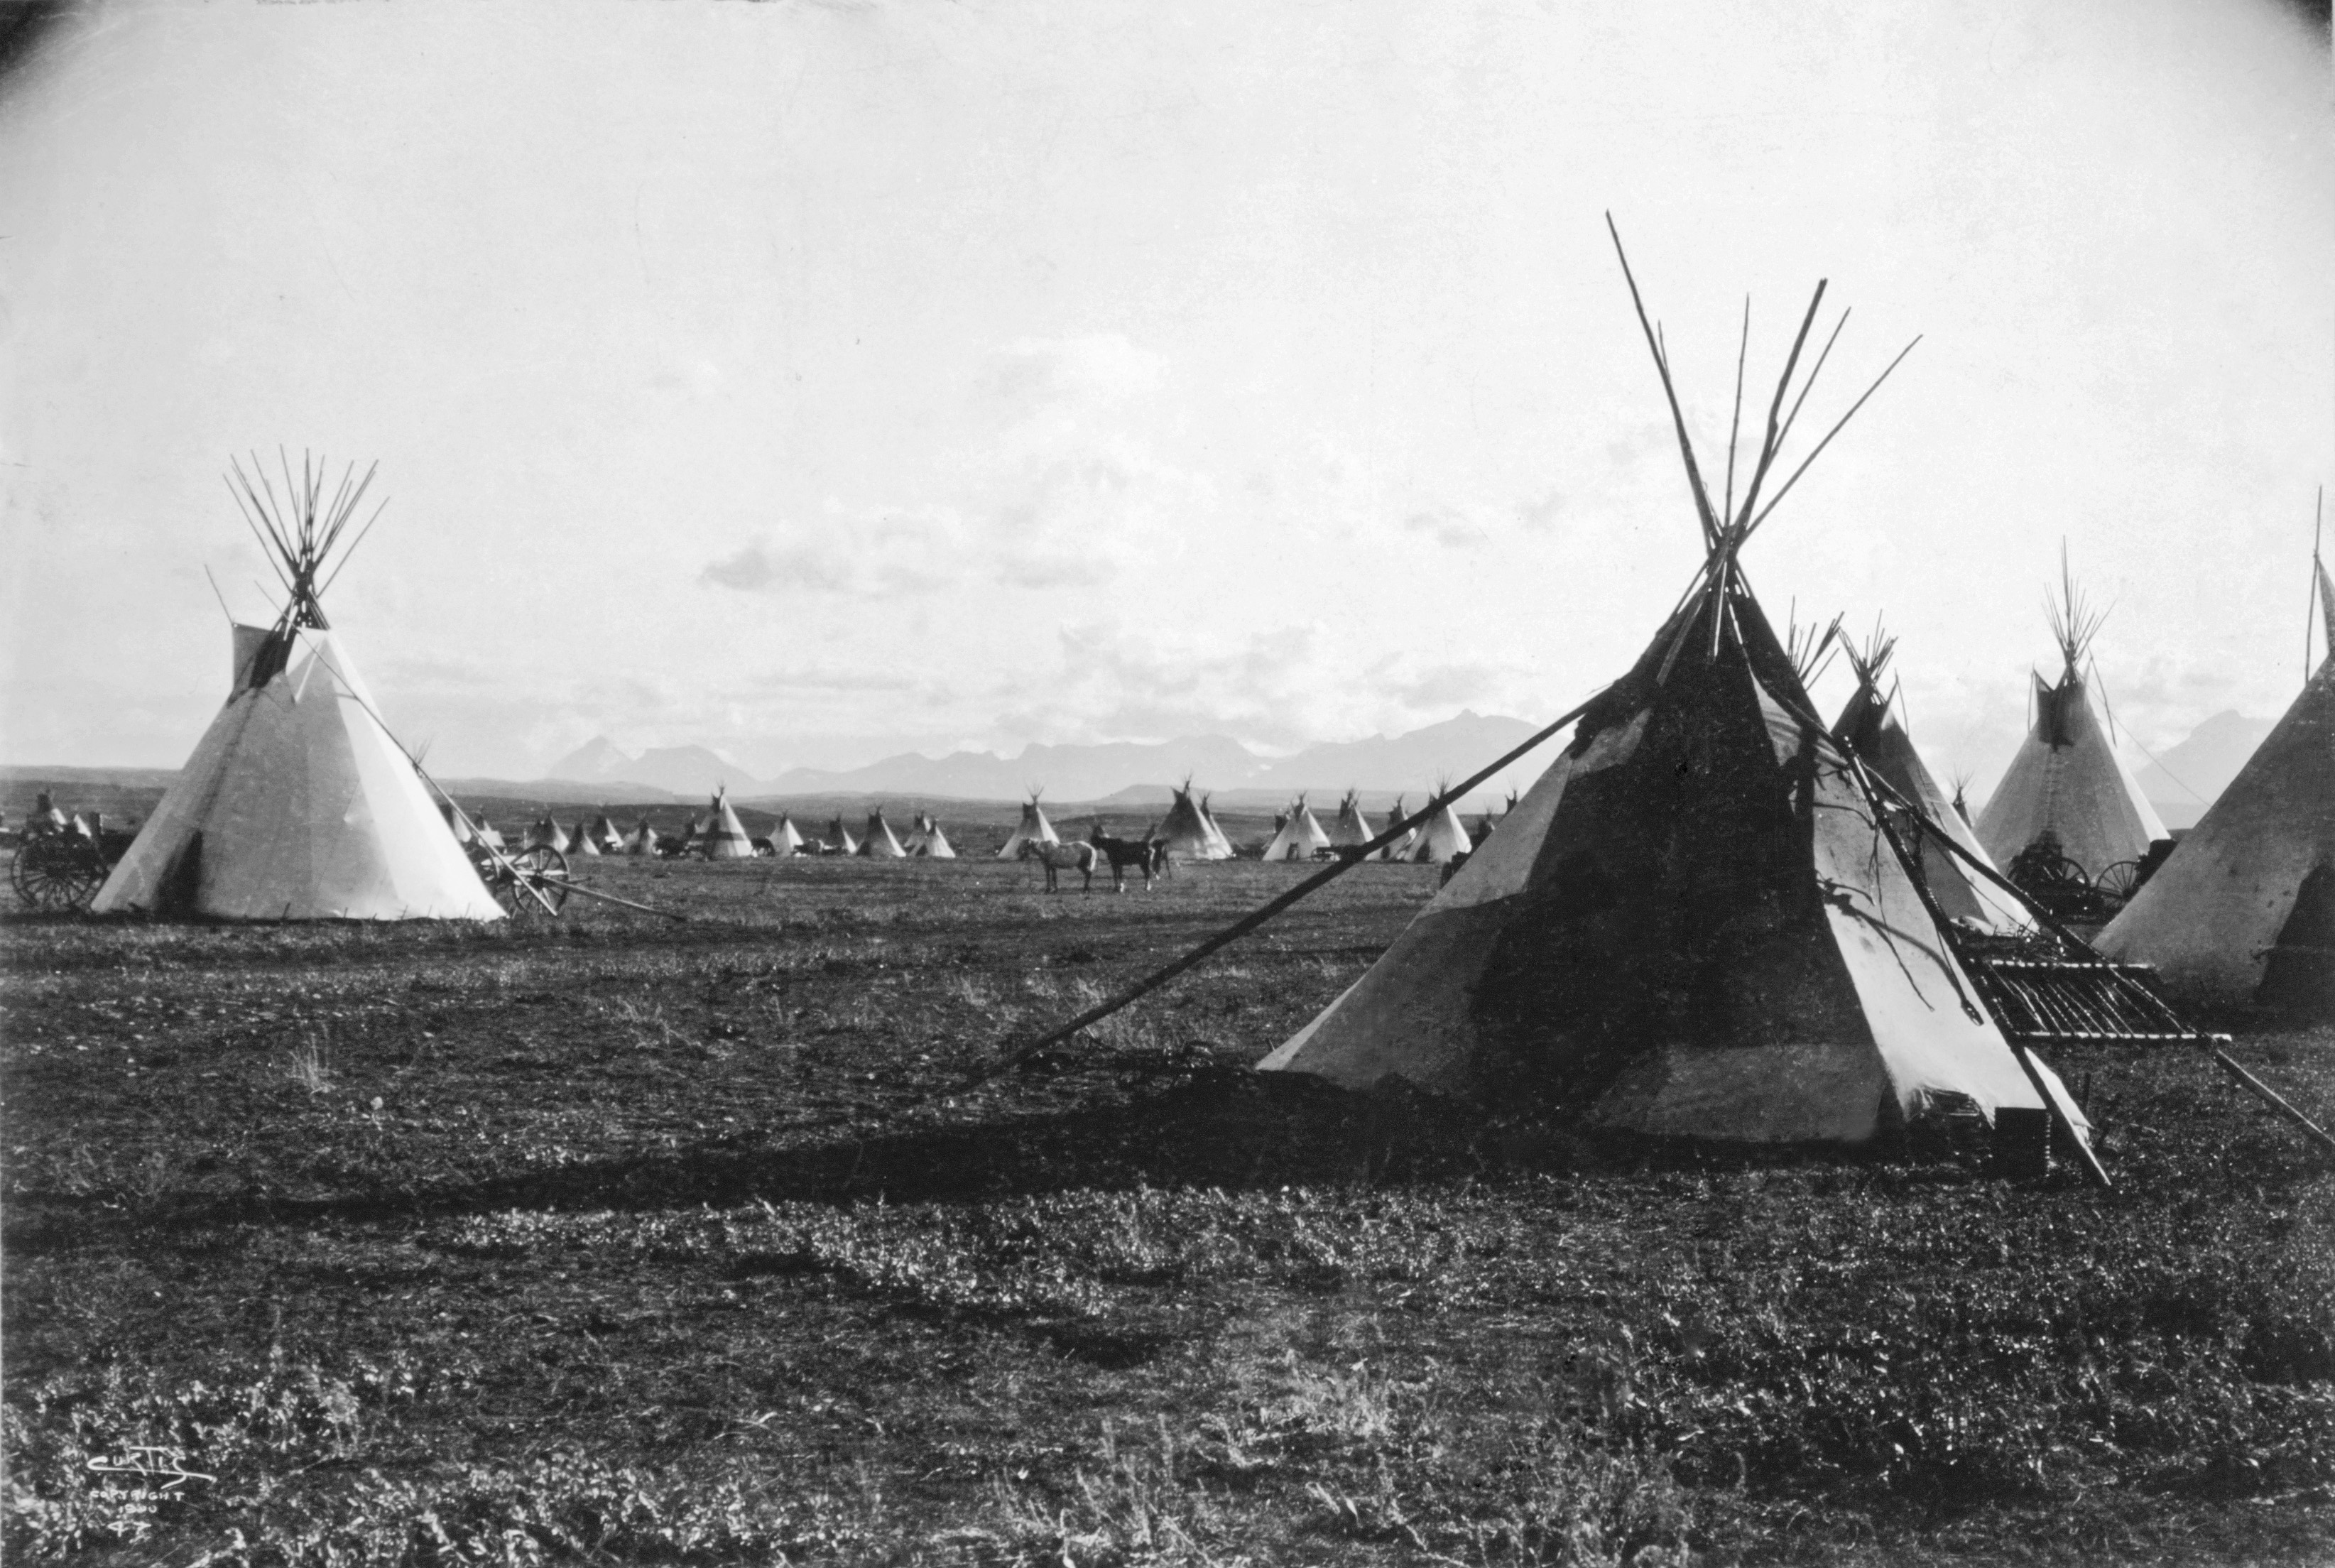 Piegan Camp, 1900. This was the first time Curtis had seen an entire Indian community intact and vibrant. He was enthralled.